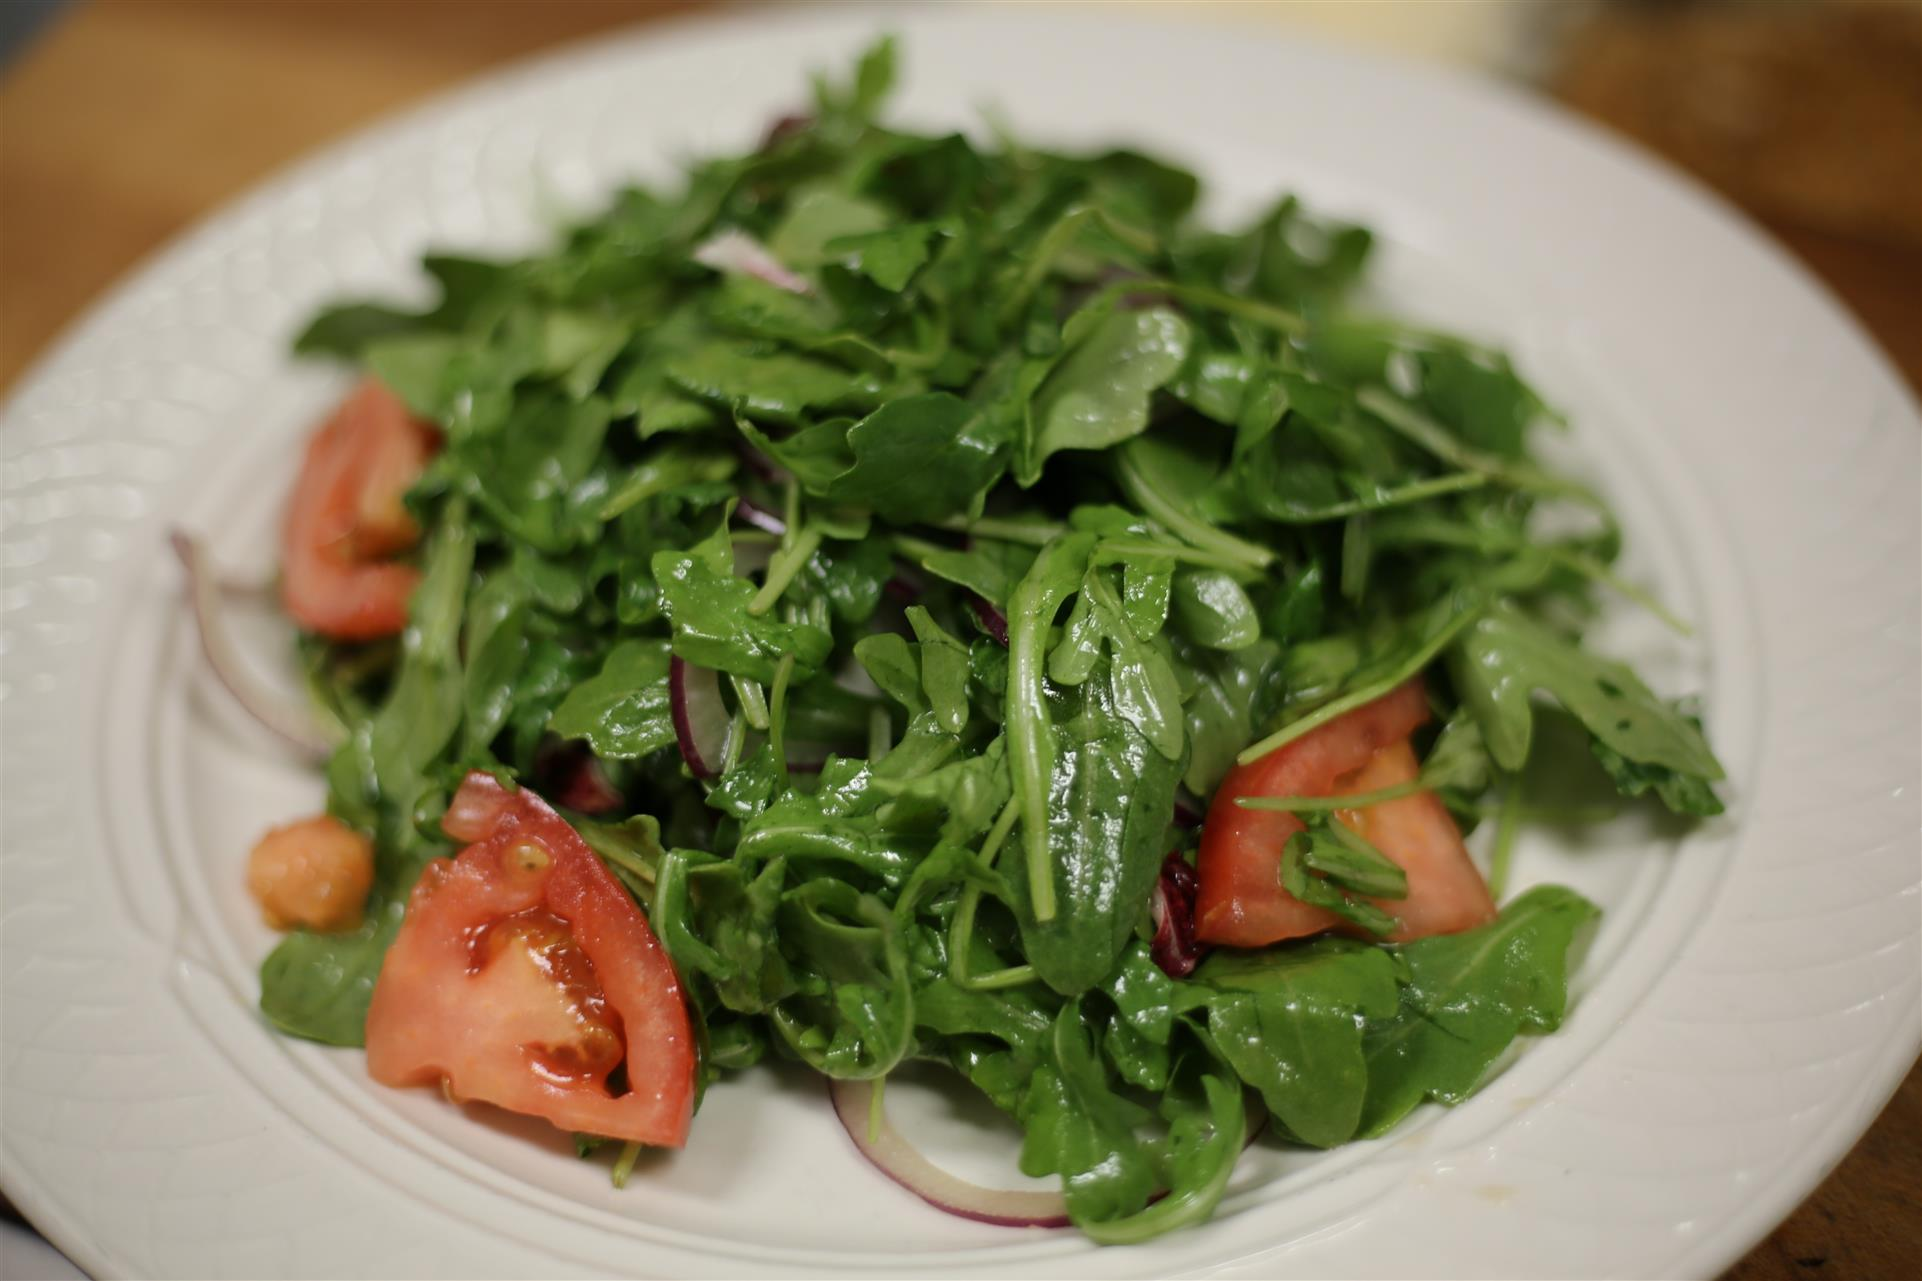 Arugula & Radicchio salad with tomatoes.